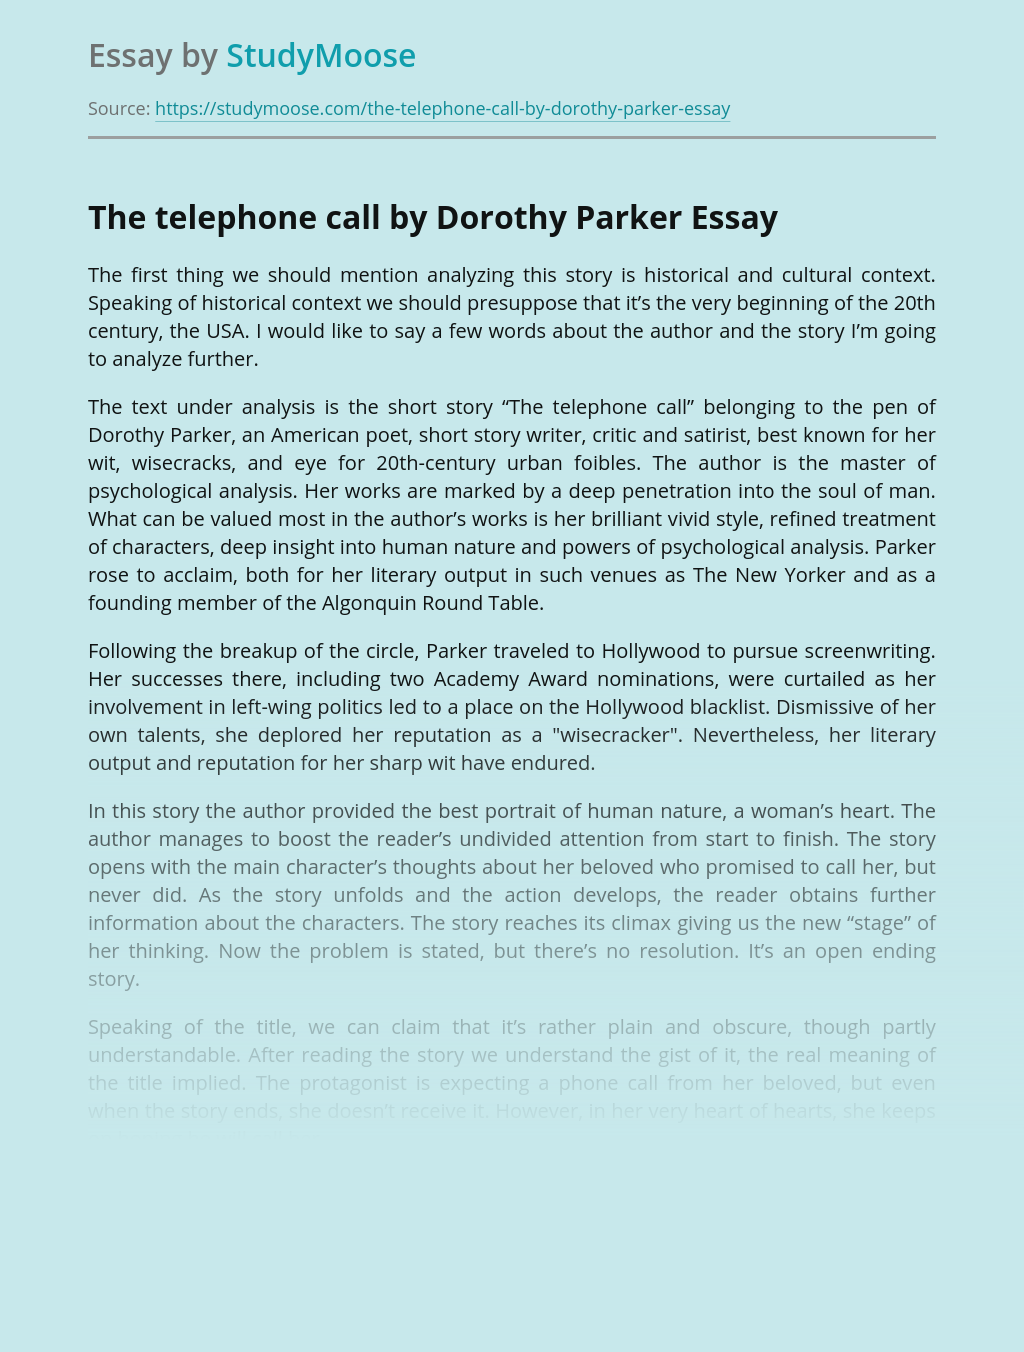 The telephone call by Dorothy Parker